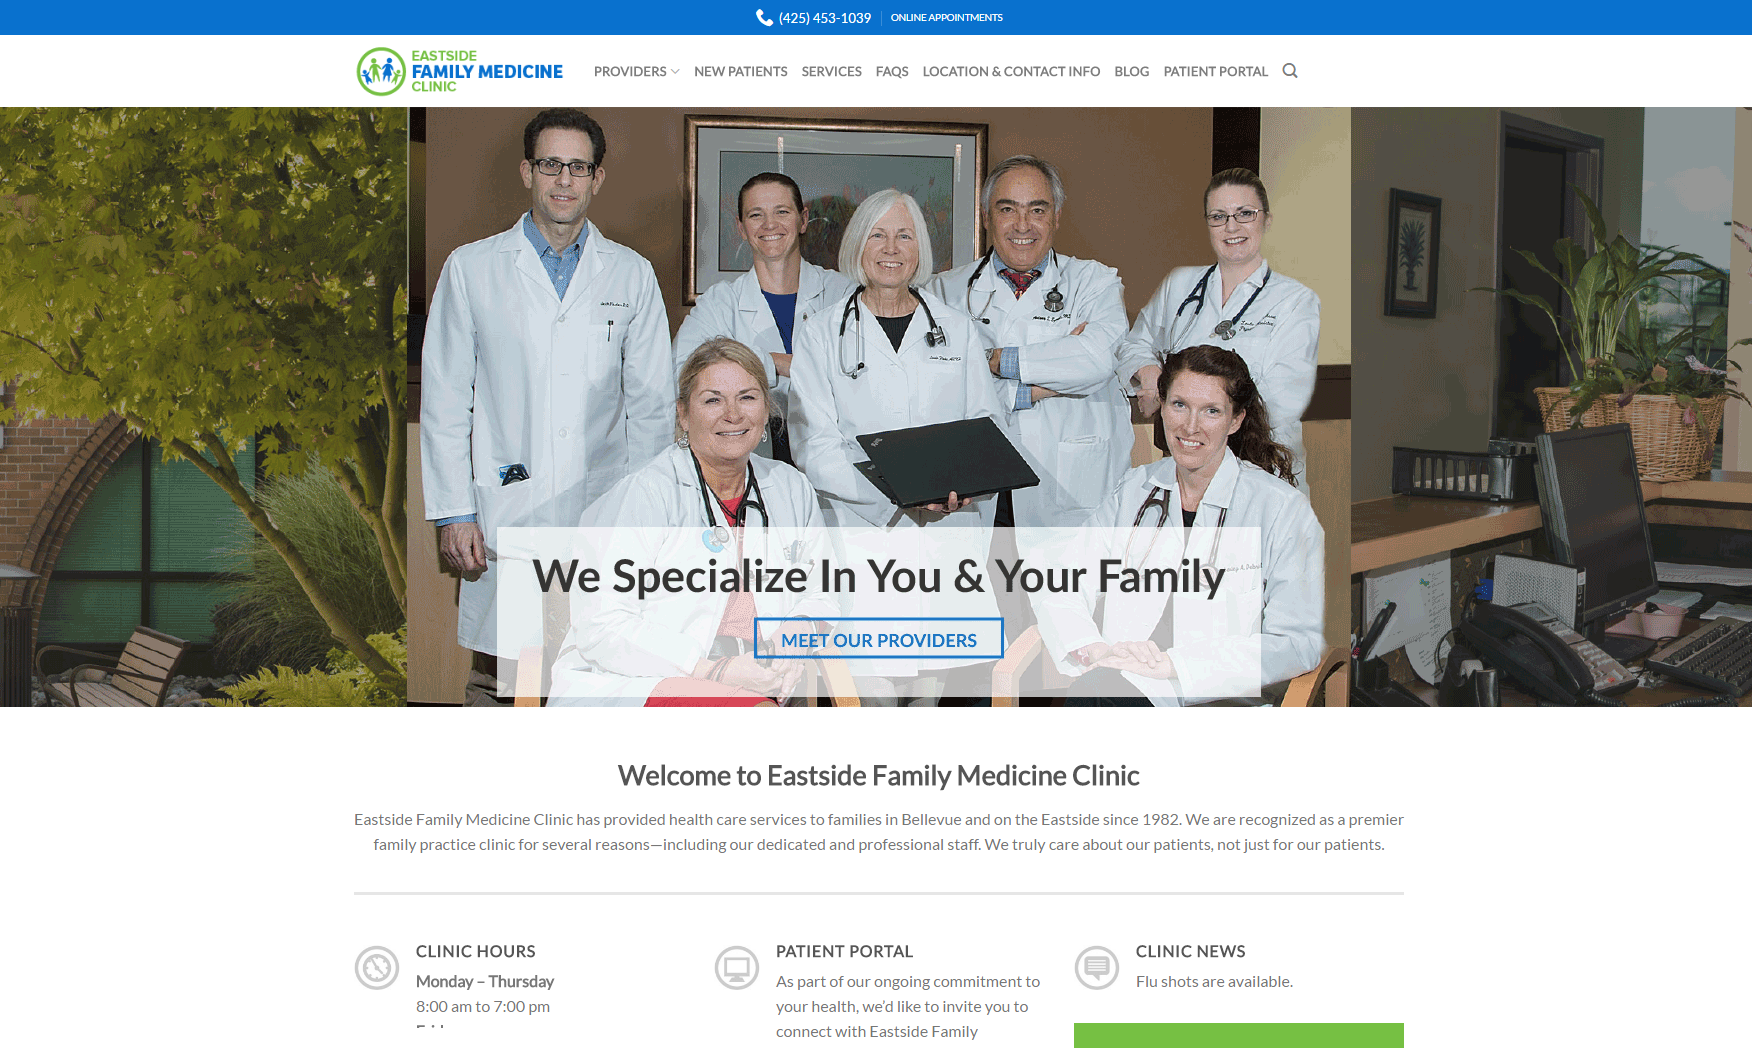 Eastside Family Medicine Clinic